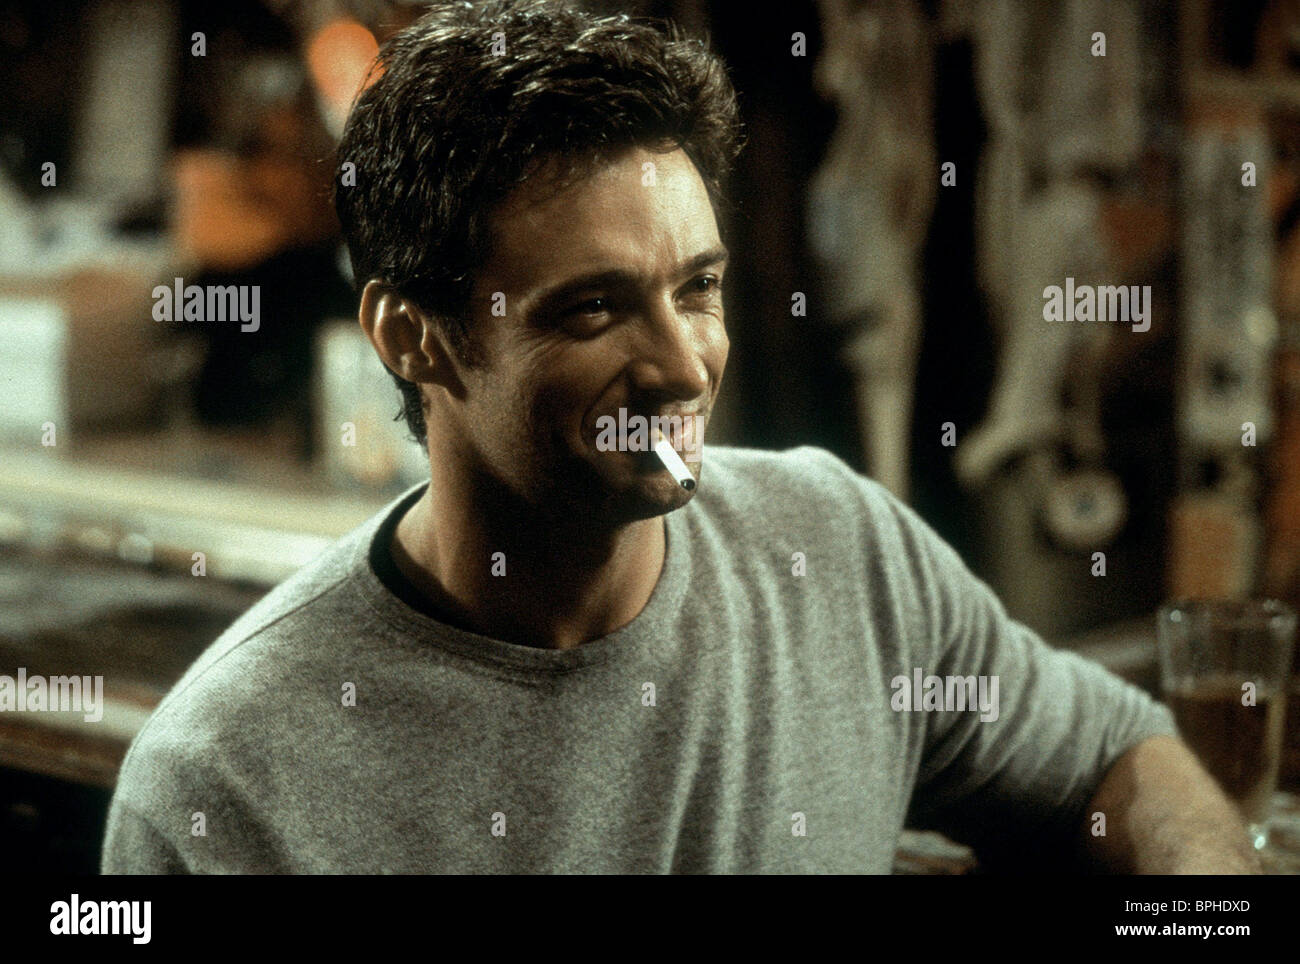 HUGH JACKMAN ANIMAL ATTRACTION : SOMEONE LIKE YOU... (2001) - Stock Image